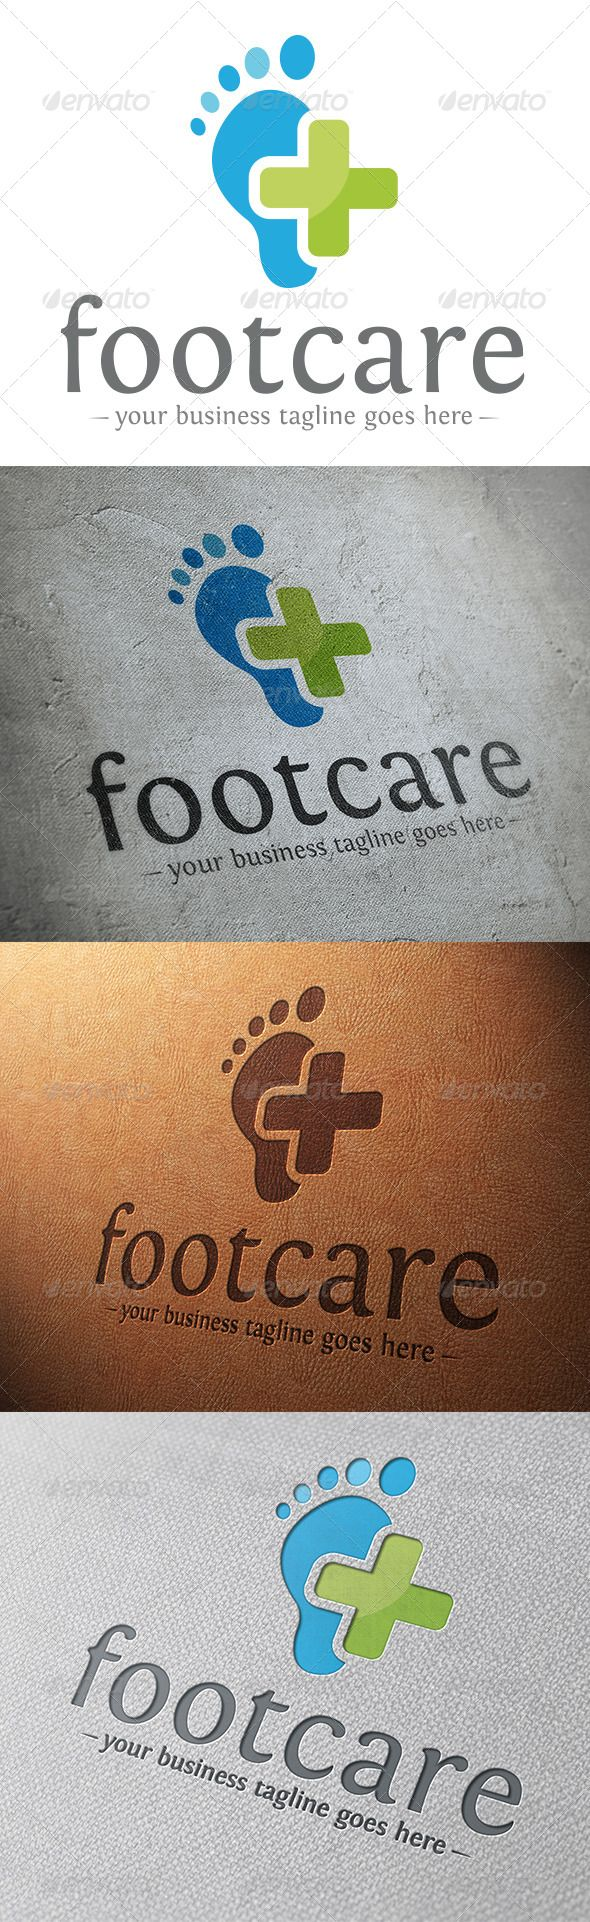 Foot Care Logo Template — Vector EPS #identity #simple • Available here → https://graphicriver.net/item/foot-care-logo-template/5859942?ref=pxcr